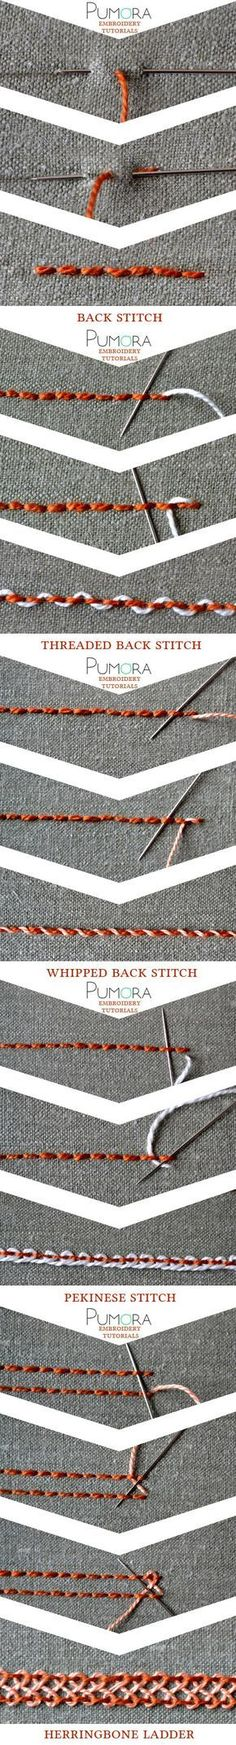 embroidery tutorials: backstitch with variations bordado, ricamo, broderie, sticken Más Más